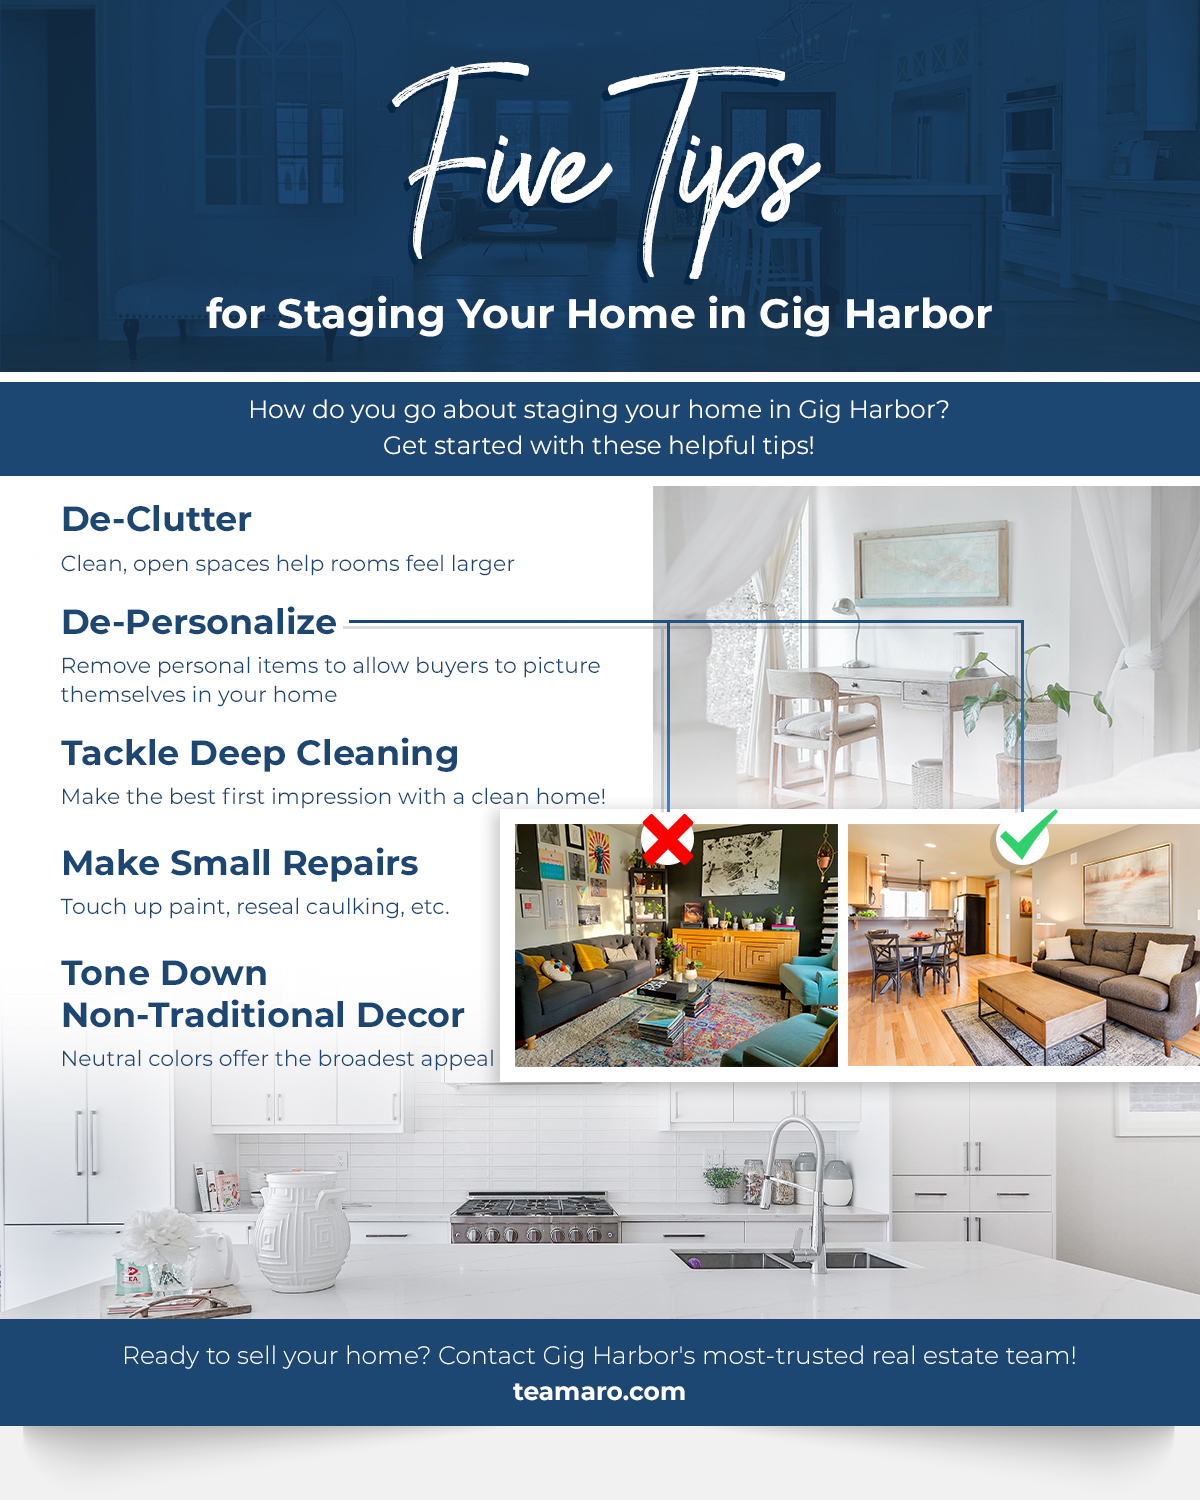 5 Tips for Staging Your Home in Gig Harbor